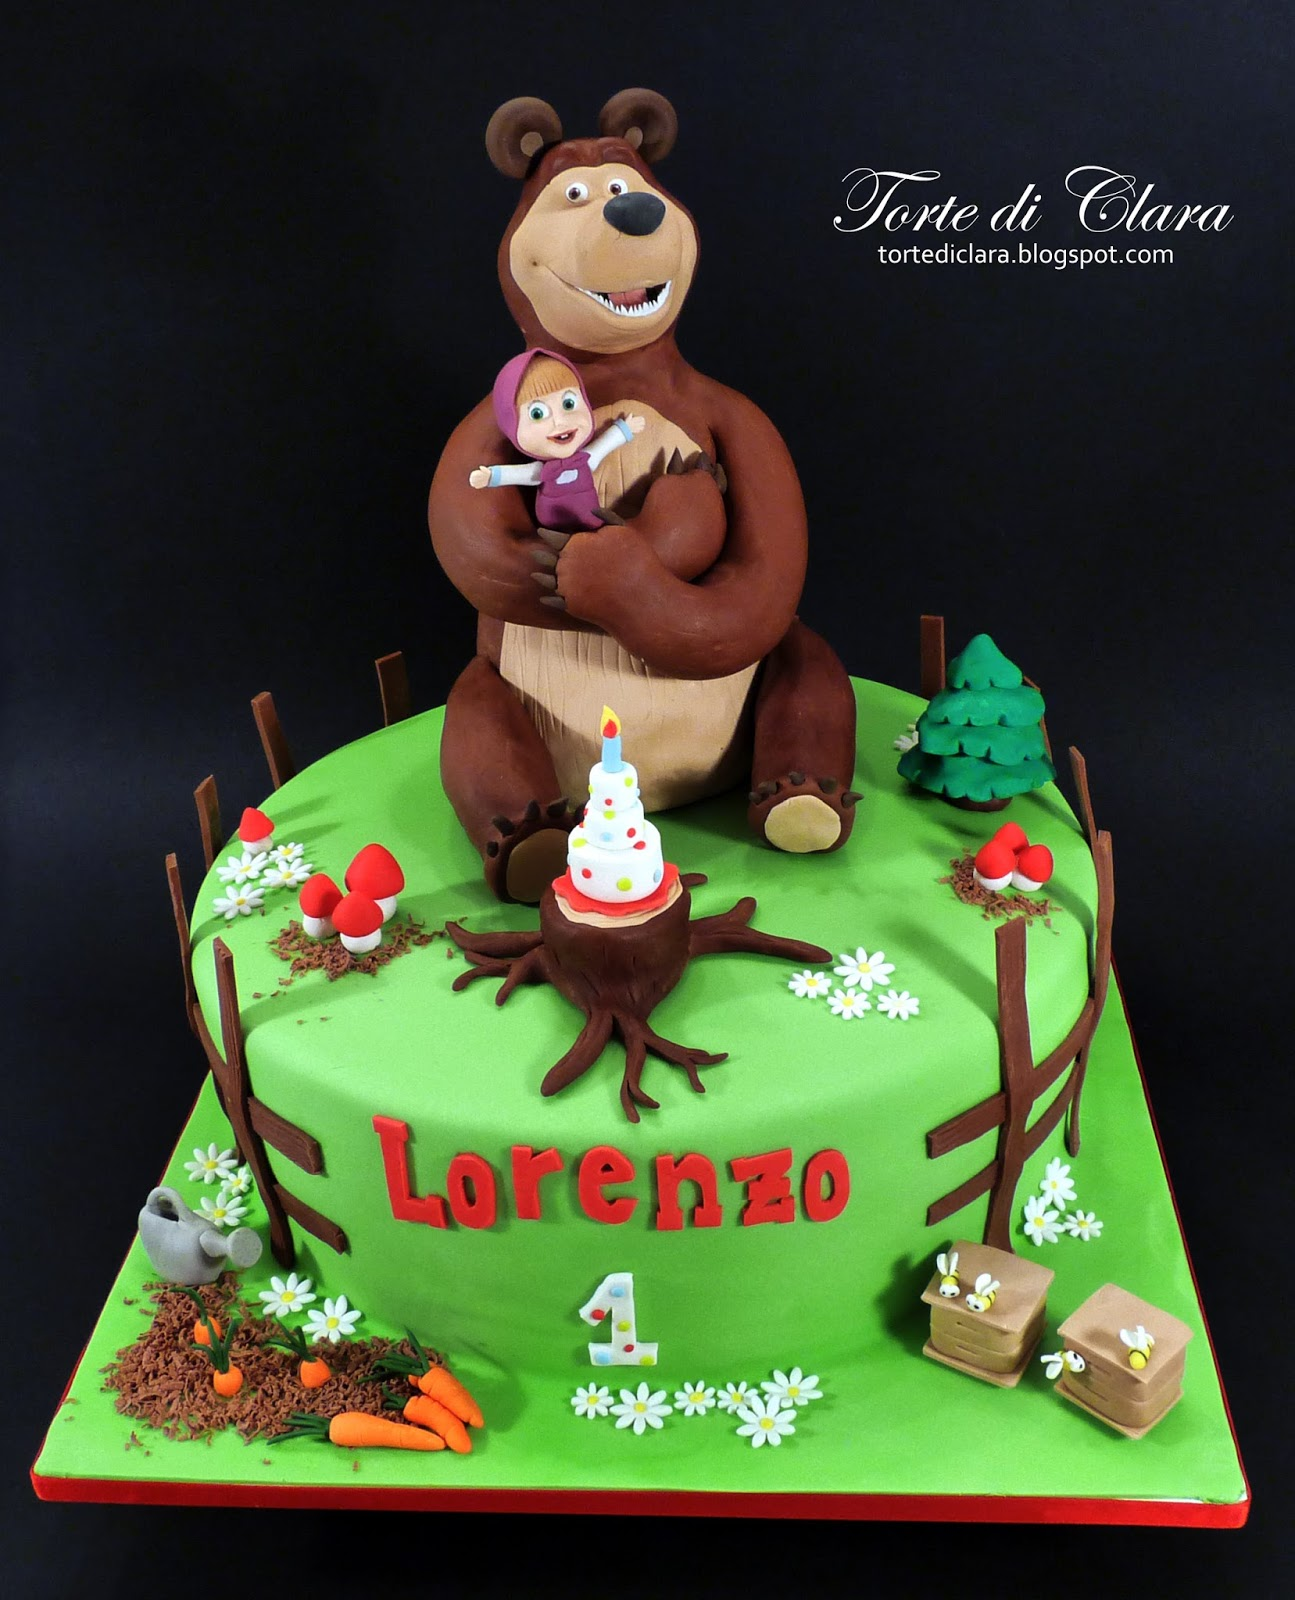 masha and the bear cake torte di clara masha and the cake 6 5728